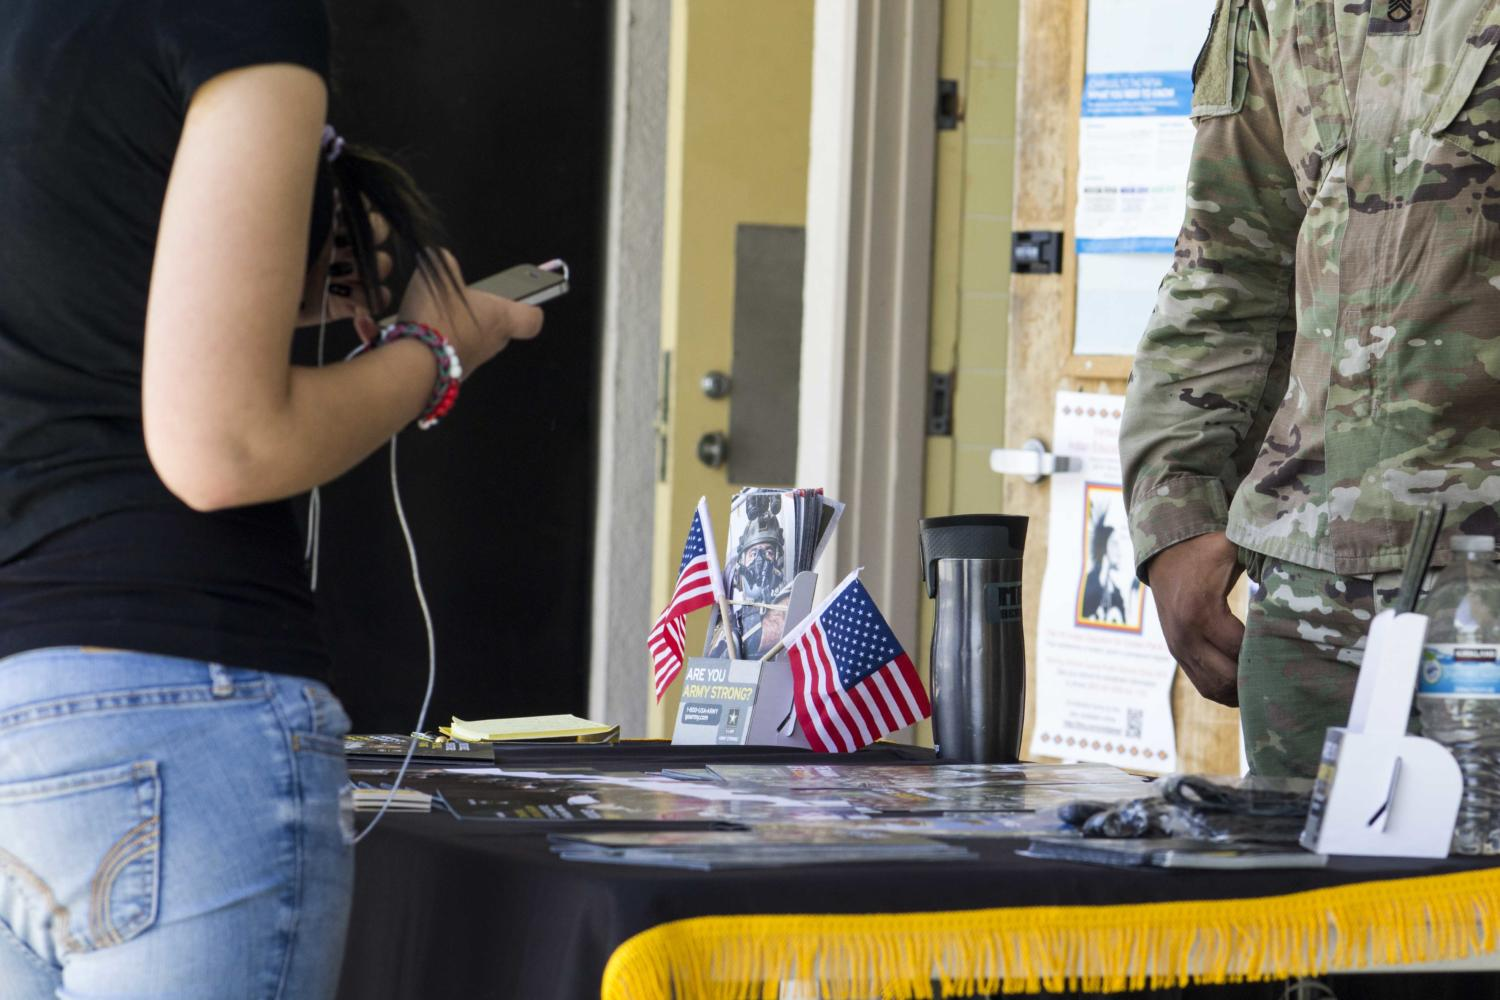 A U.S. Army stand is placed in front of the College and Career Center throughout the school year to inform students about joining the military in the future.